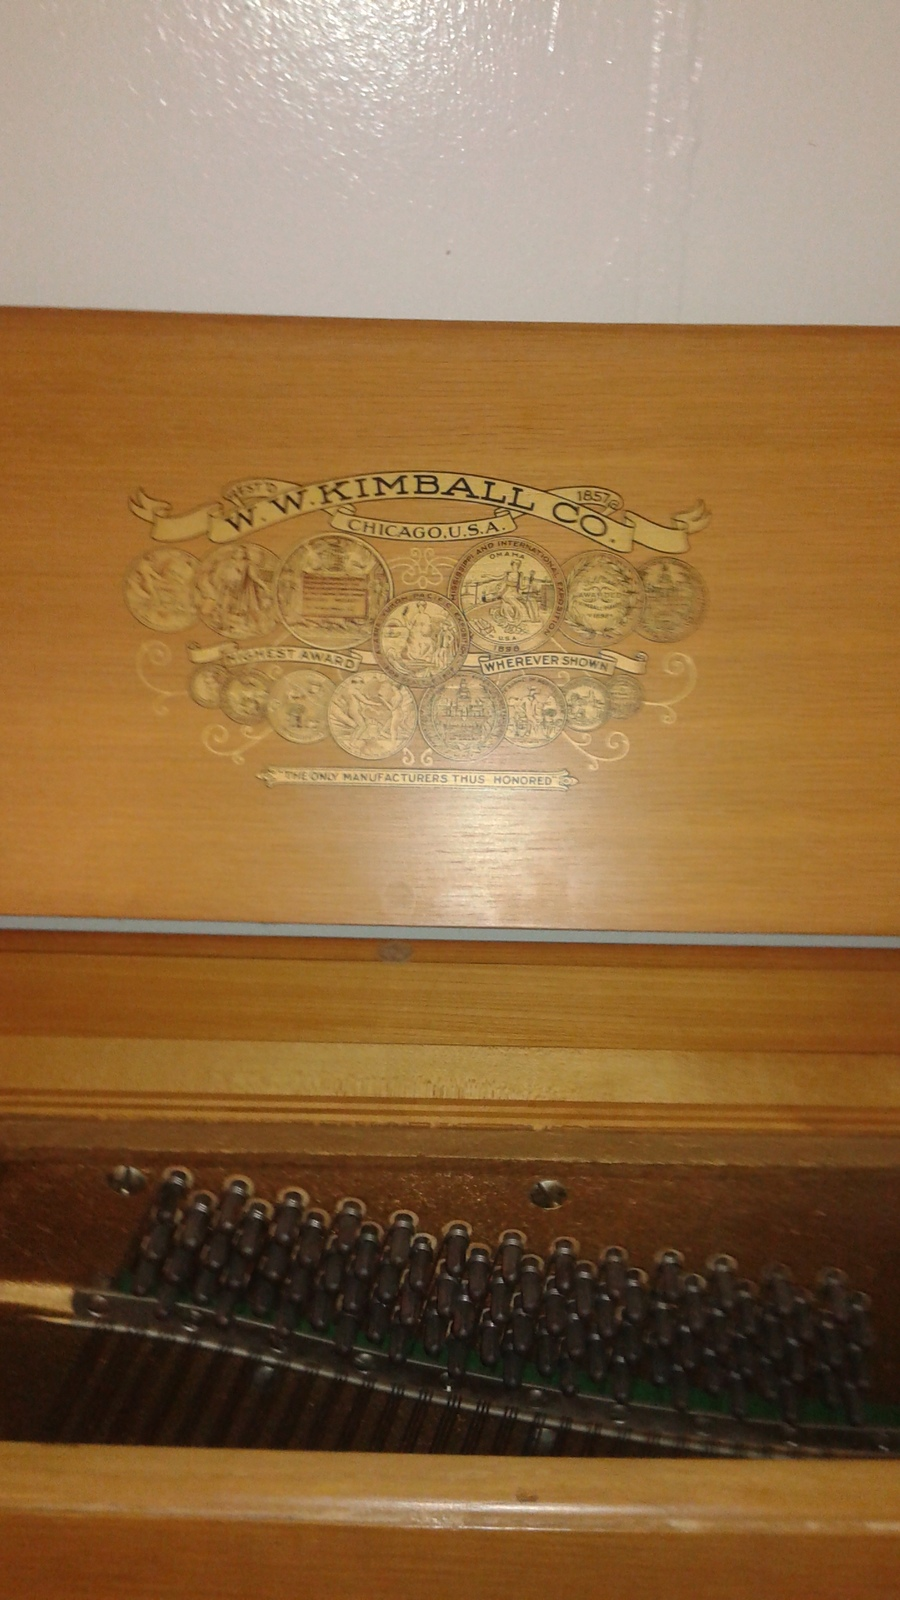 I Have An Upright Kimball Piano Serial Number 599186  It